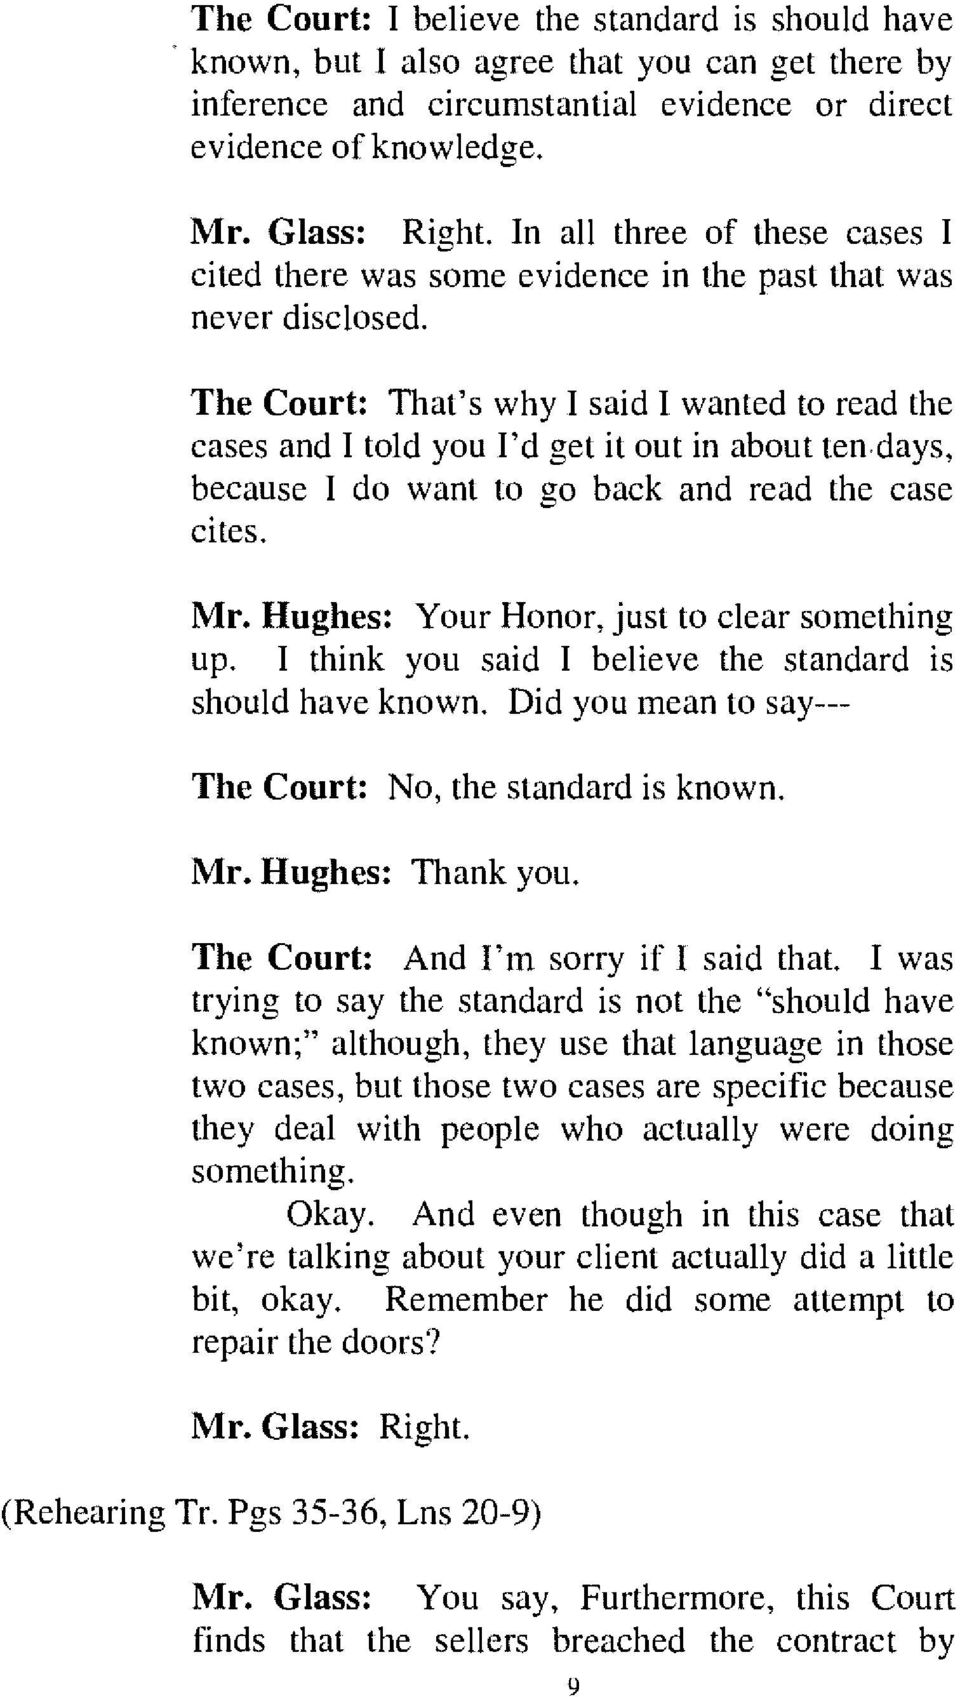 The Court: That's why I said I wanted to read the cases and I told you I'd get it out in about tendays, because I do want to go back and read the case cites. Mr.